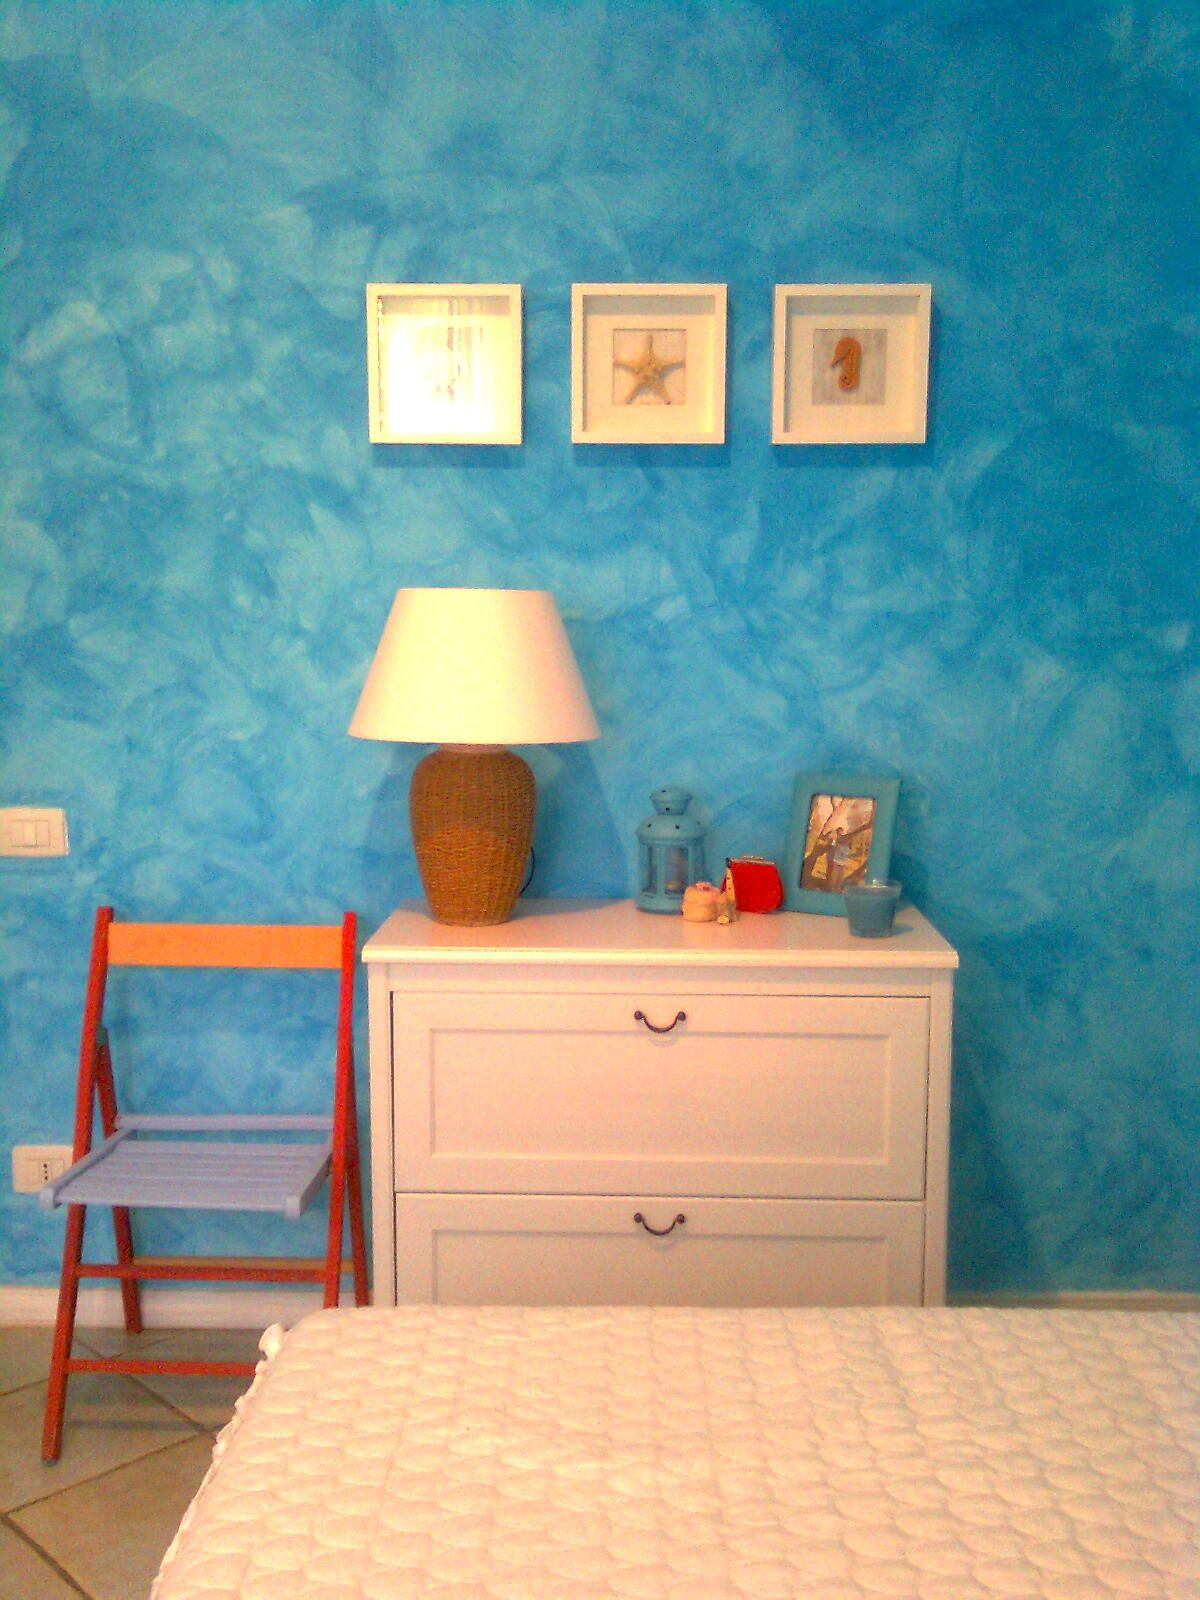 Faux Painting Walls faux painting 101: tips, tricks, and inspiring ideas for faux finishes